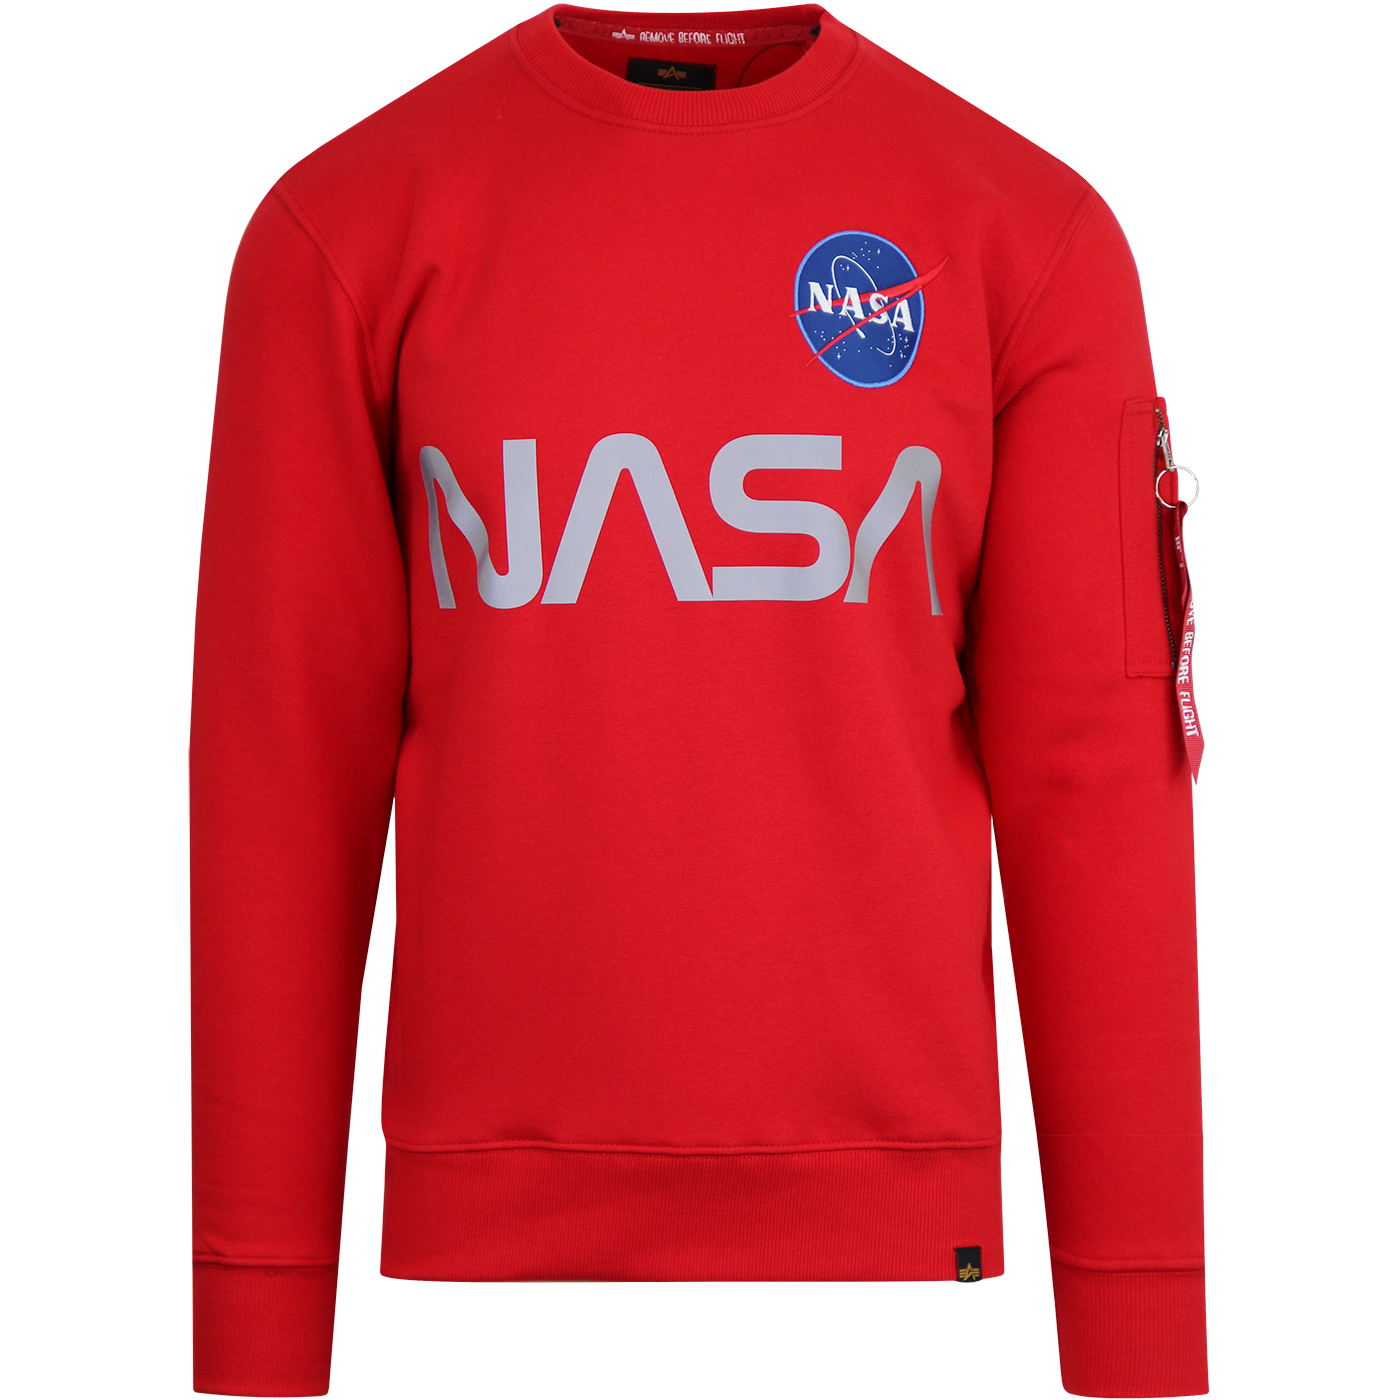 ALPHA INDUSTRIES Reflective NASA Sweatshirt (R)